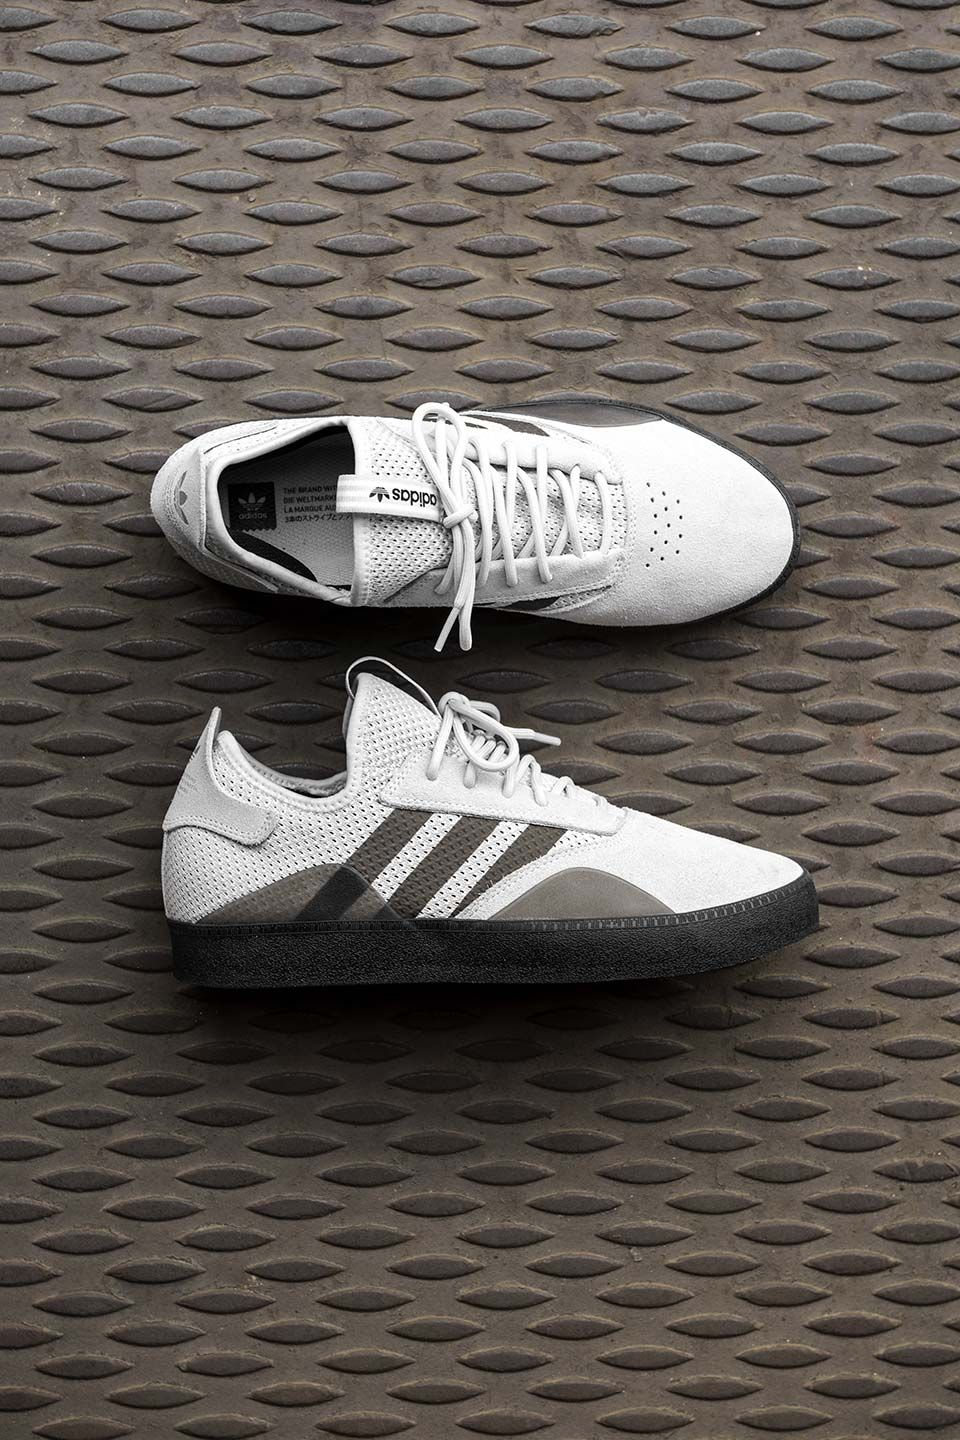 save off 6c312 844d7 The adidas Skateboarding 3ST Is the Future of Skateboarding